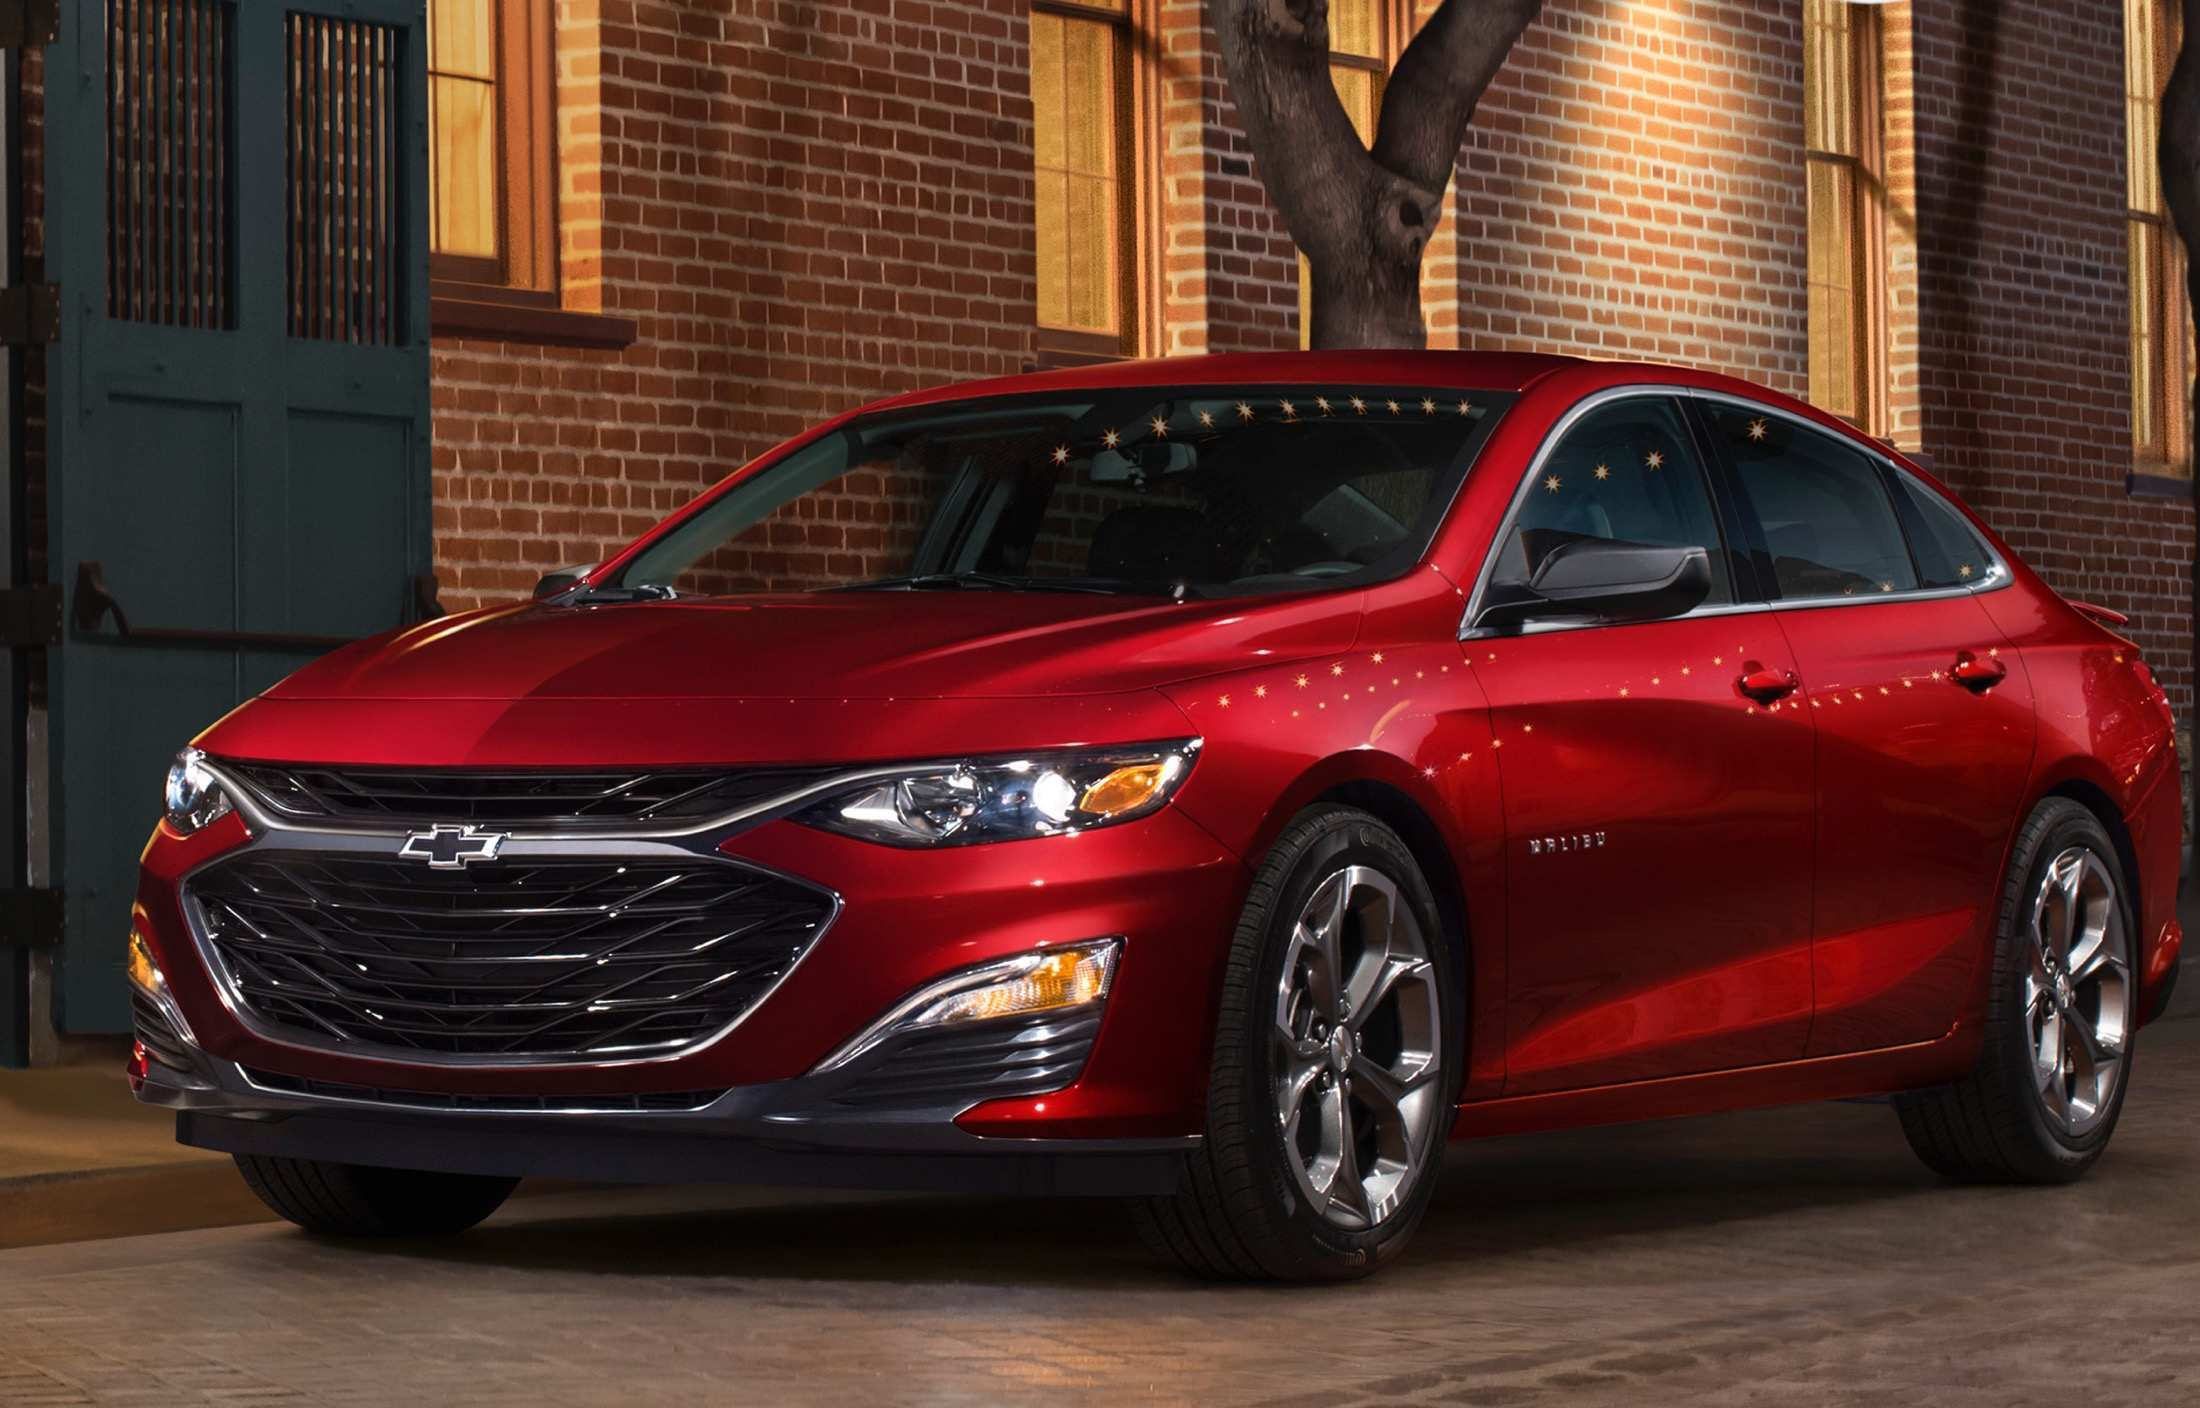 47 Gallery of The Chevrolet Malibu 2019 Price Rumors Price and Review for The Chevrolet Malibu 2019 Price Rumors